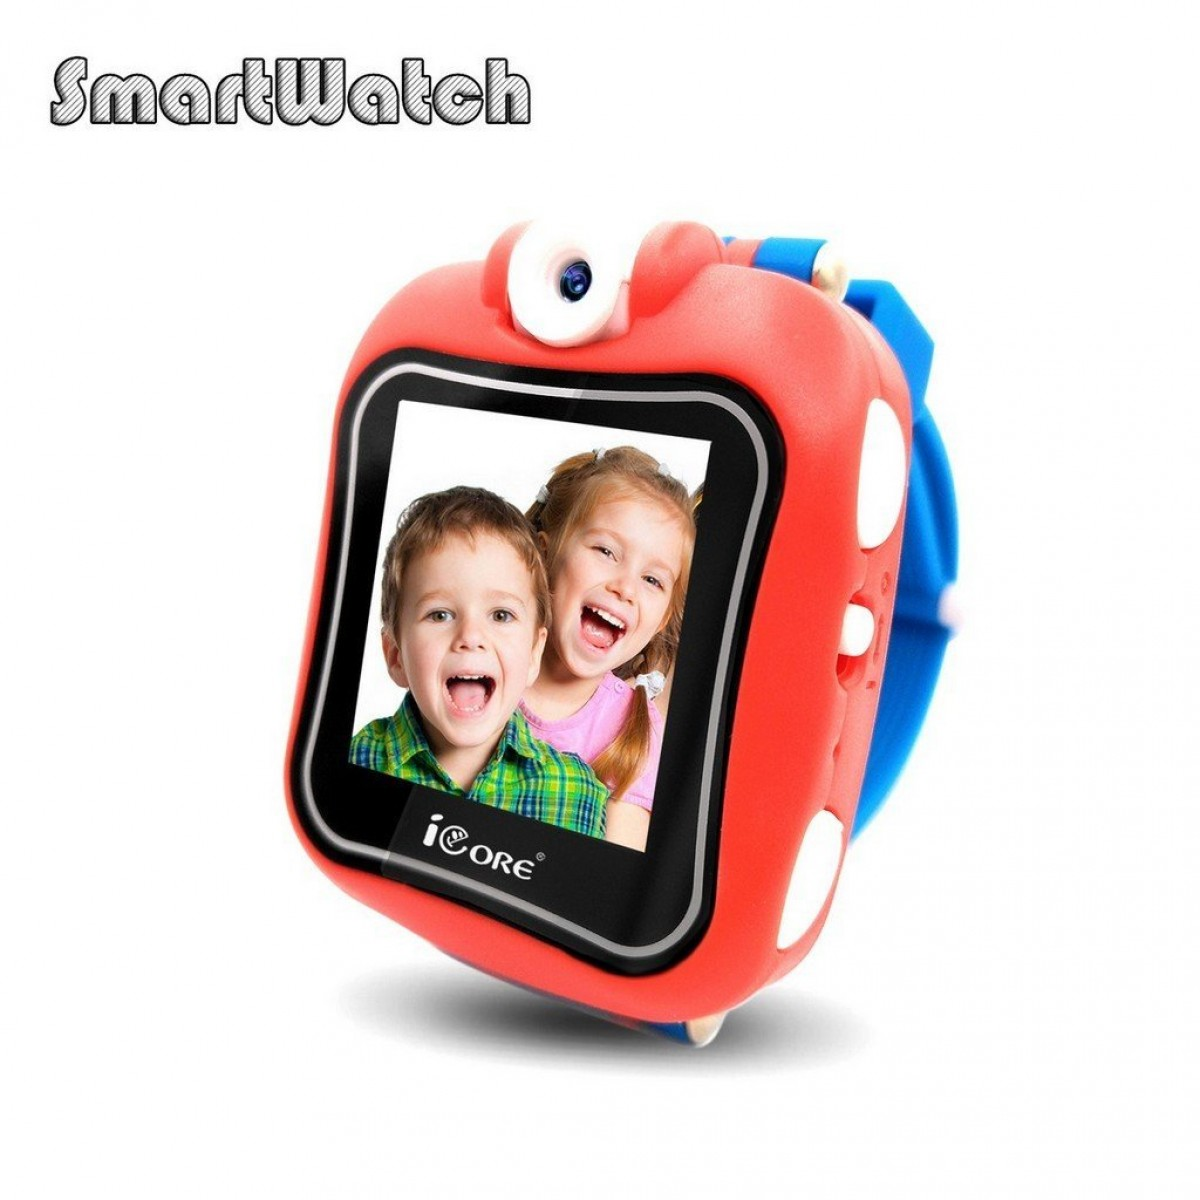 Game Watch, Kids Smartwatch, Electronic Watch with Video Games,Wearable  Learning Timer Alarm Clock Watch with Camera for kids